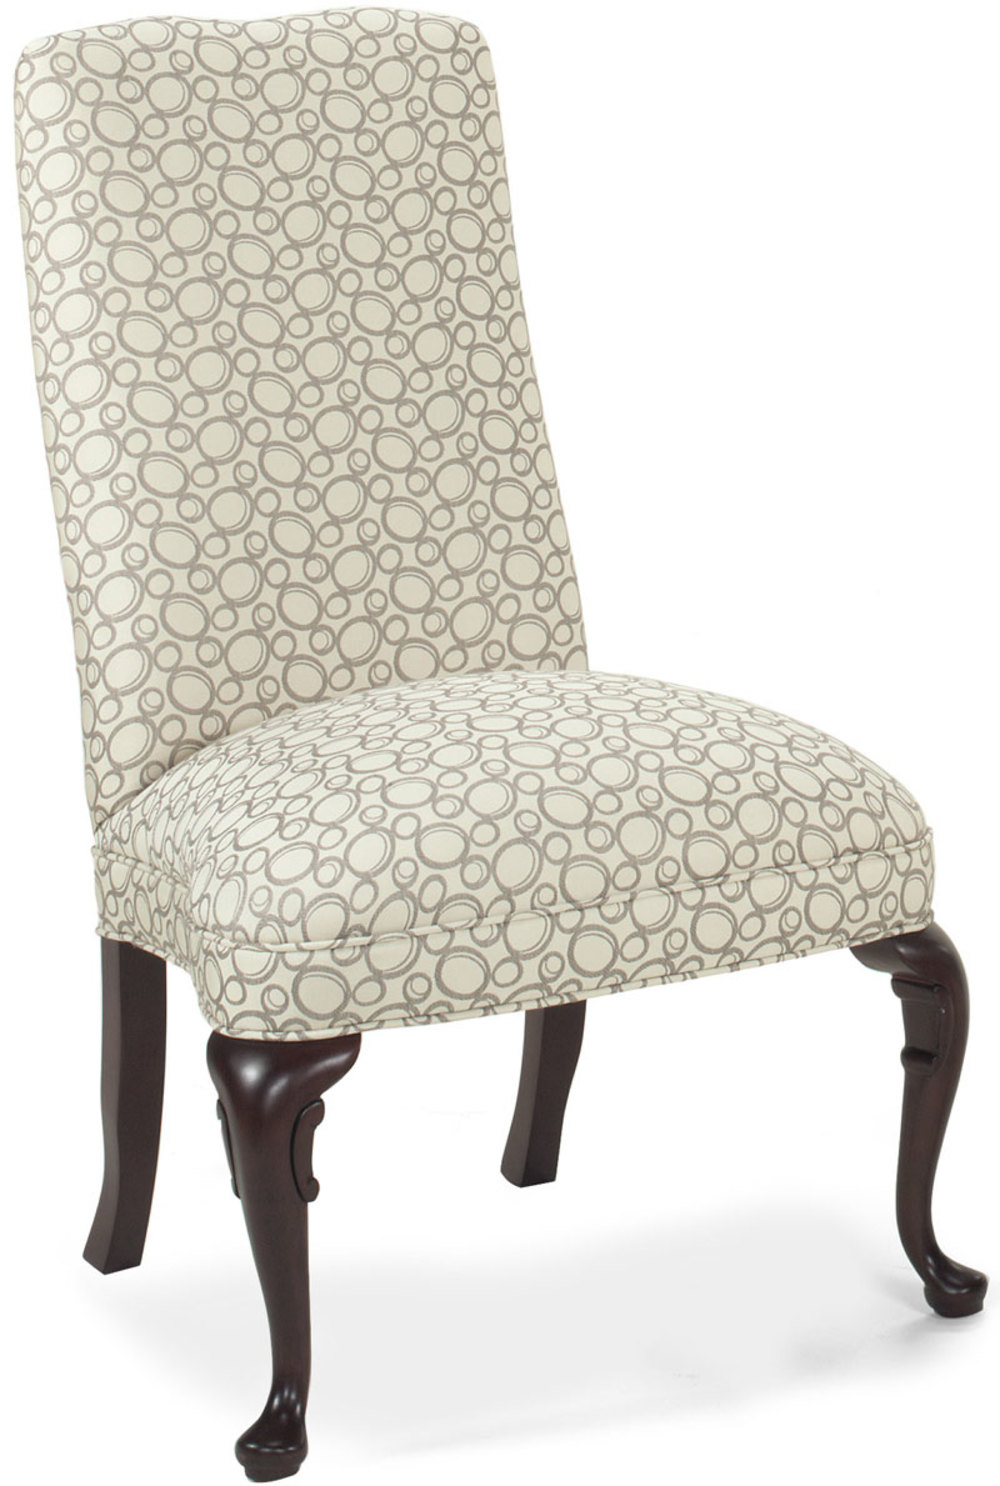 Parker Southern - Kennedy Armless Chair